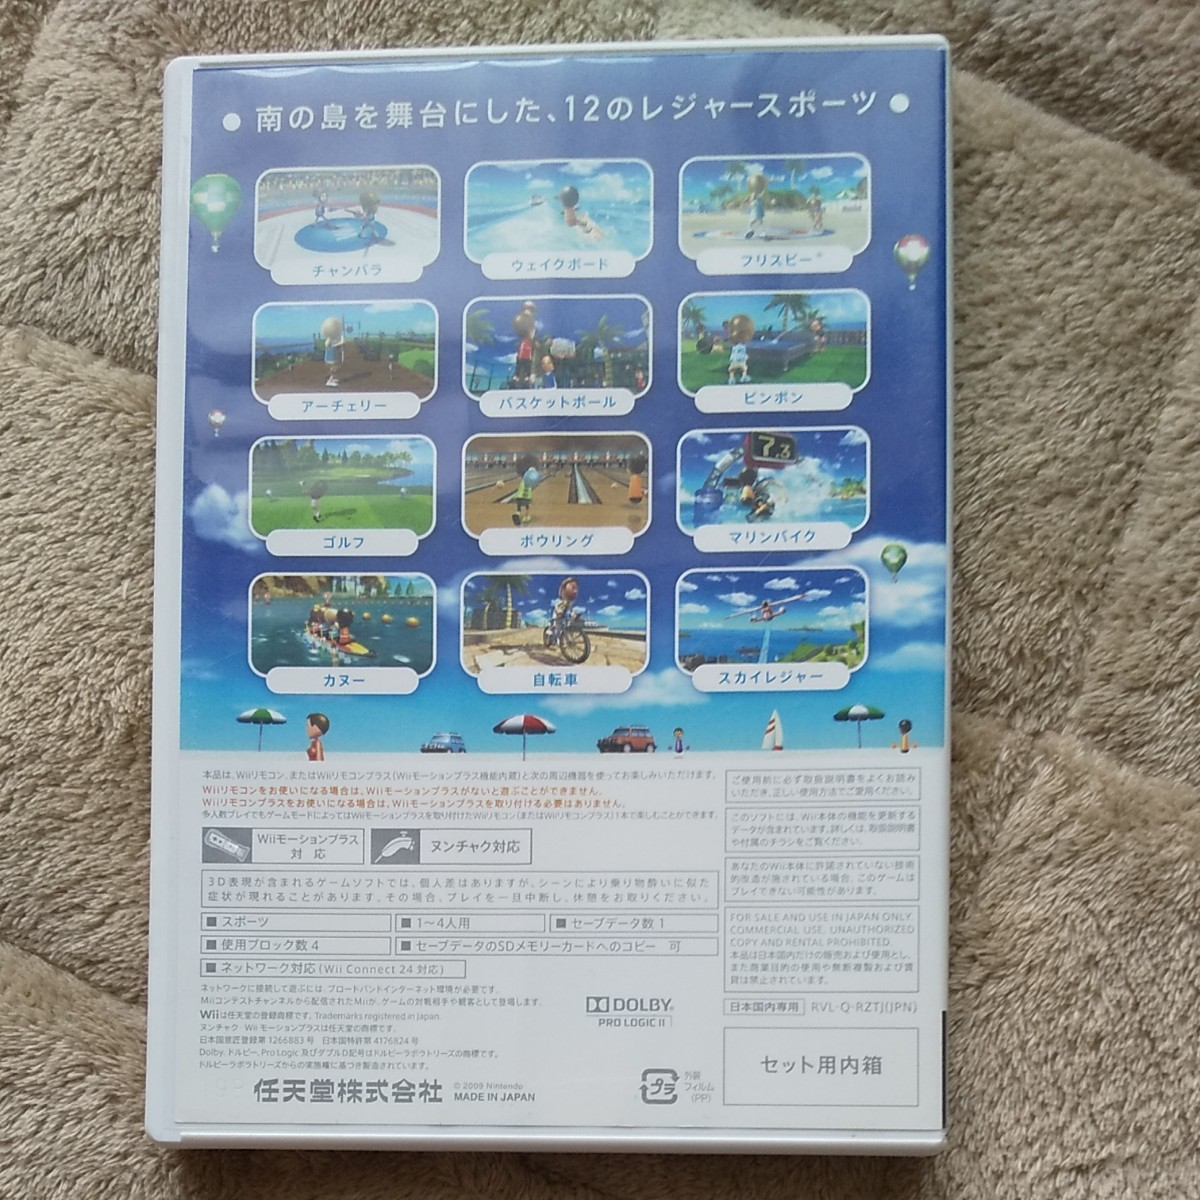 Wiiスポーツリゾート 任天堂 Wii